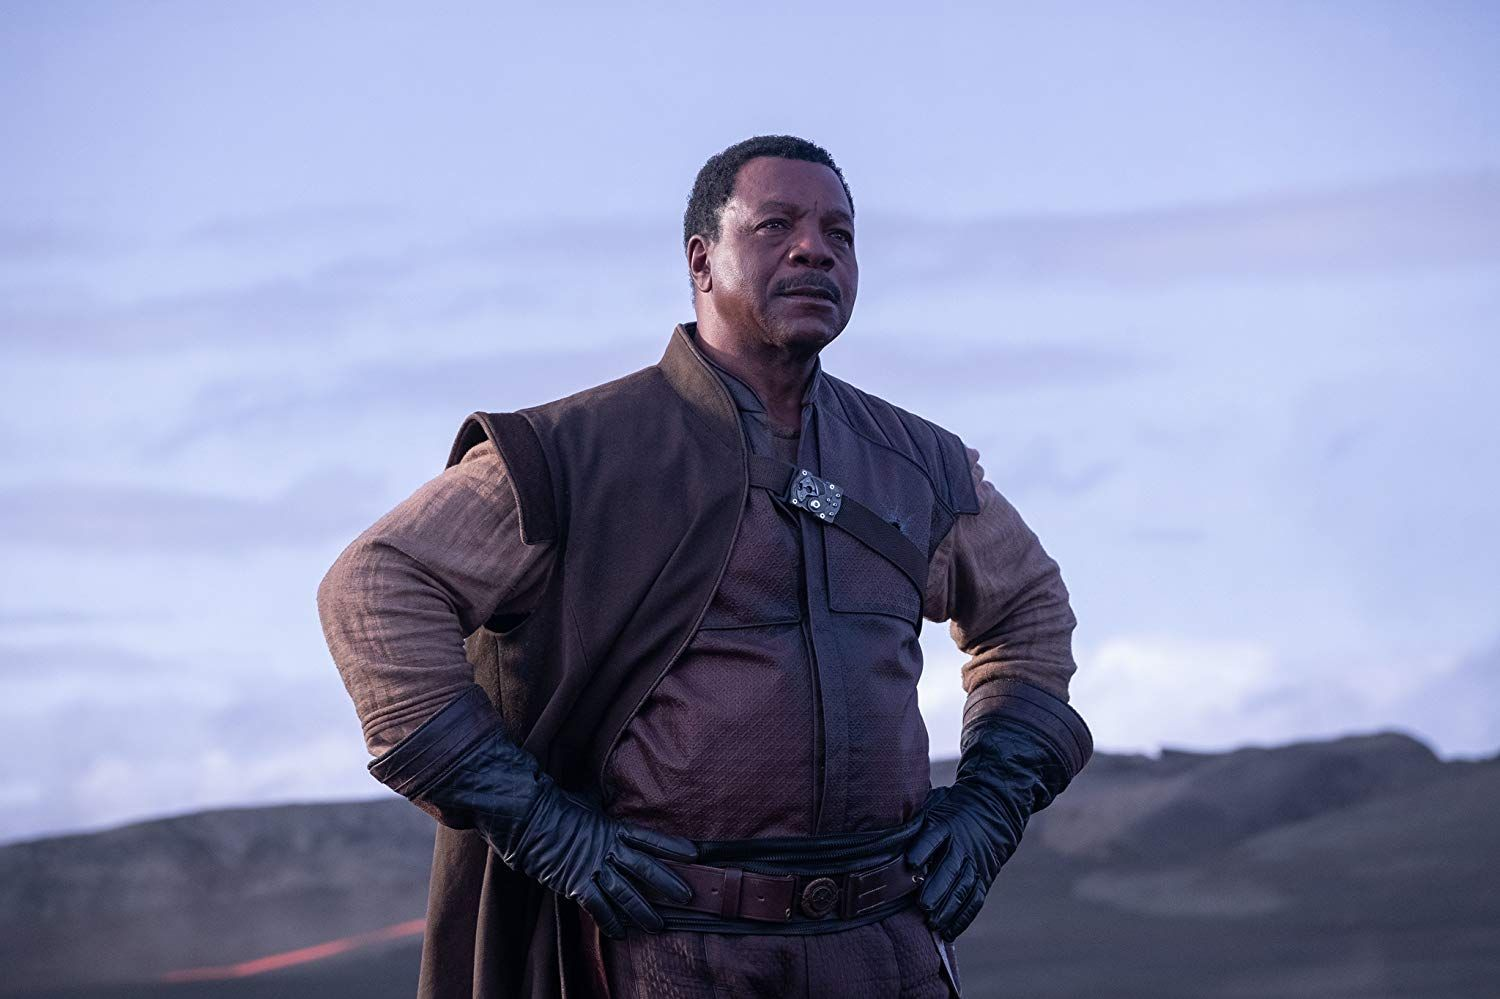 The New Star Wars Series Has All The Makings Of Becoming The Next Massive TV Hit